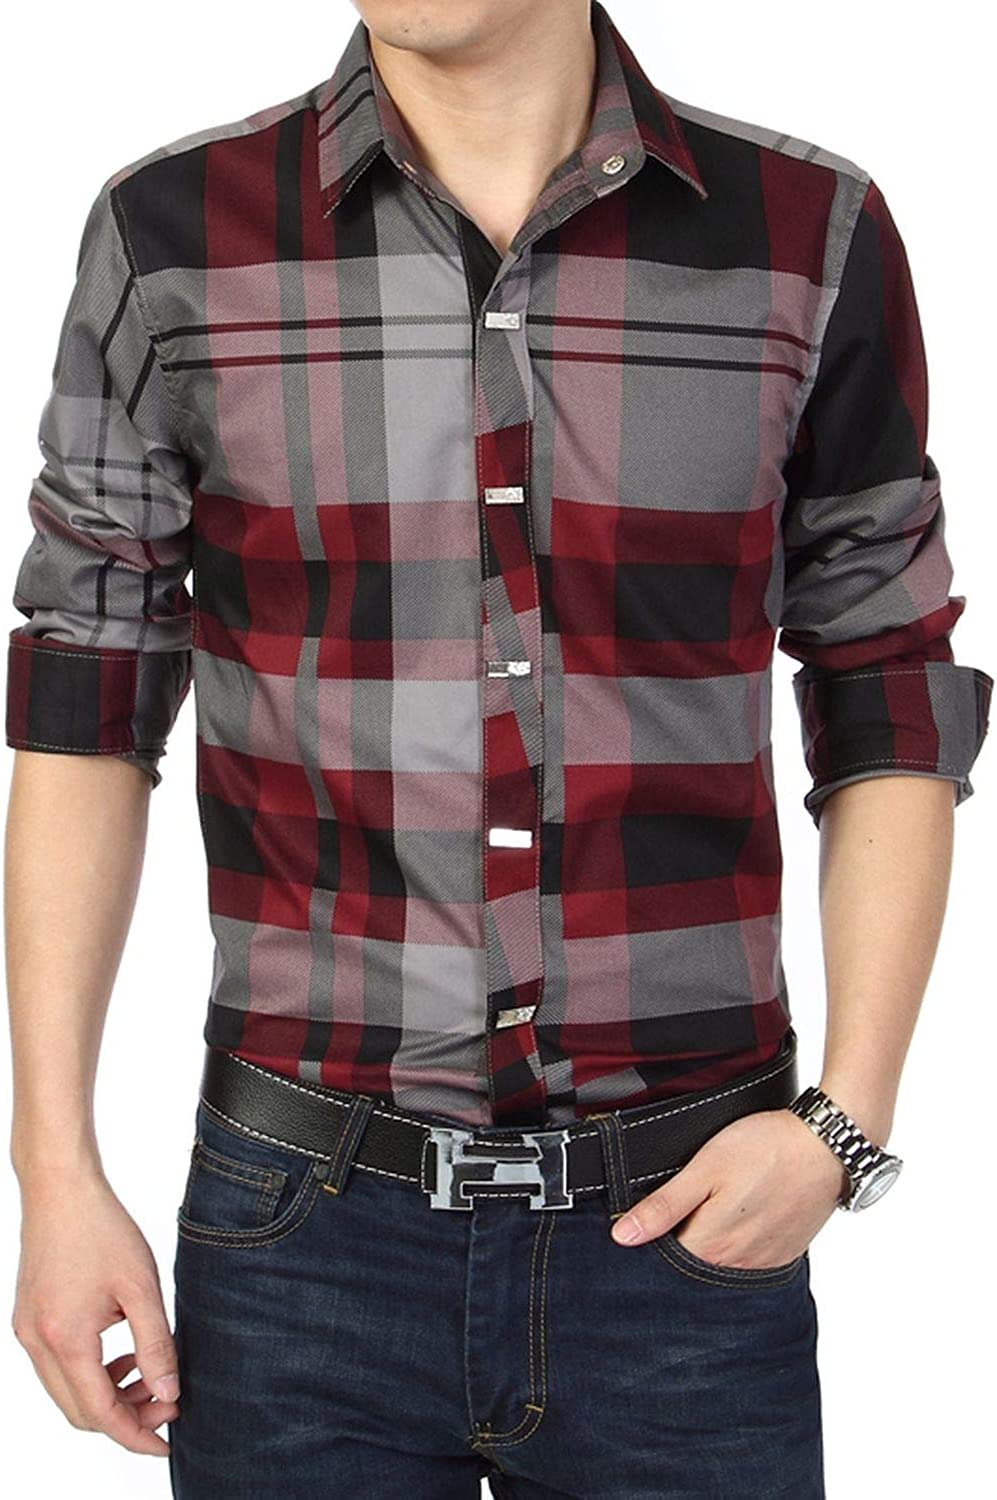 - I'm good at you Plus Size Men Men Men Plaid Dress Shirts Slim Fit Casual Mens Shirts Long Sleeves Mens Shirts c3af6b